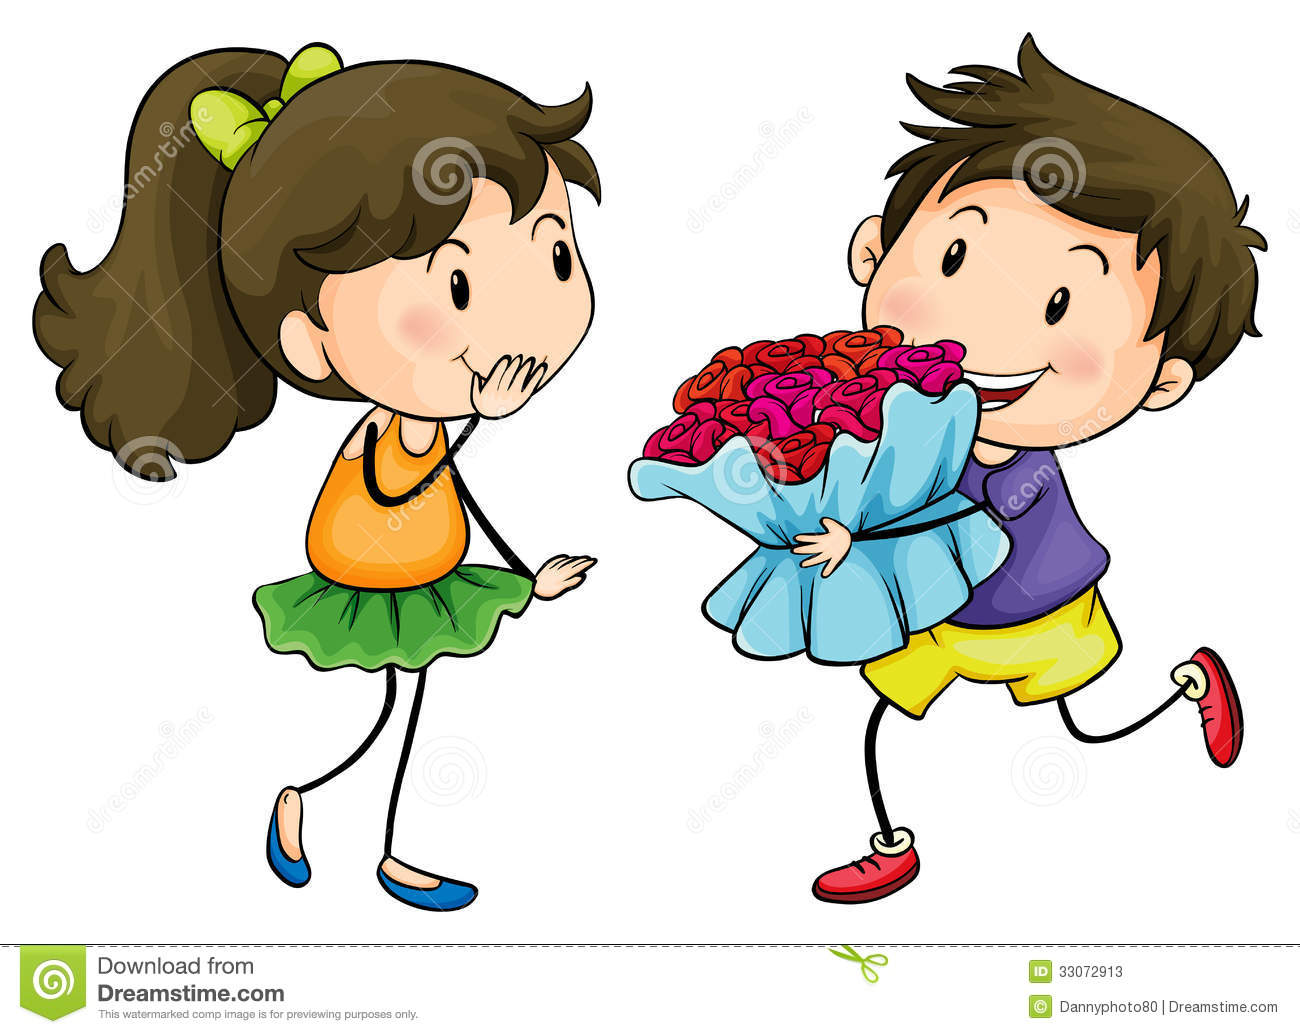 Clipart roses giving. Flowers station